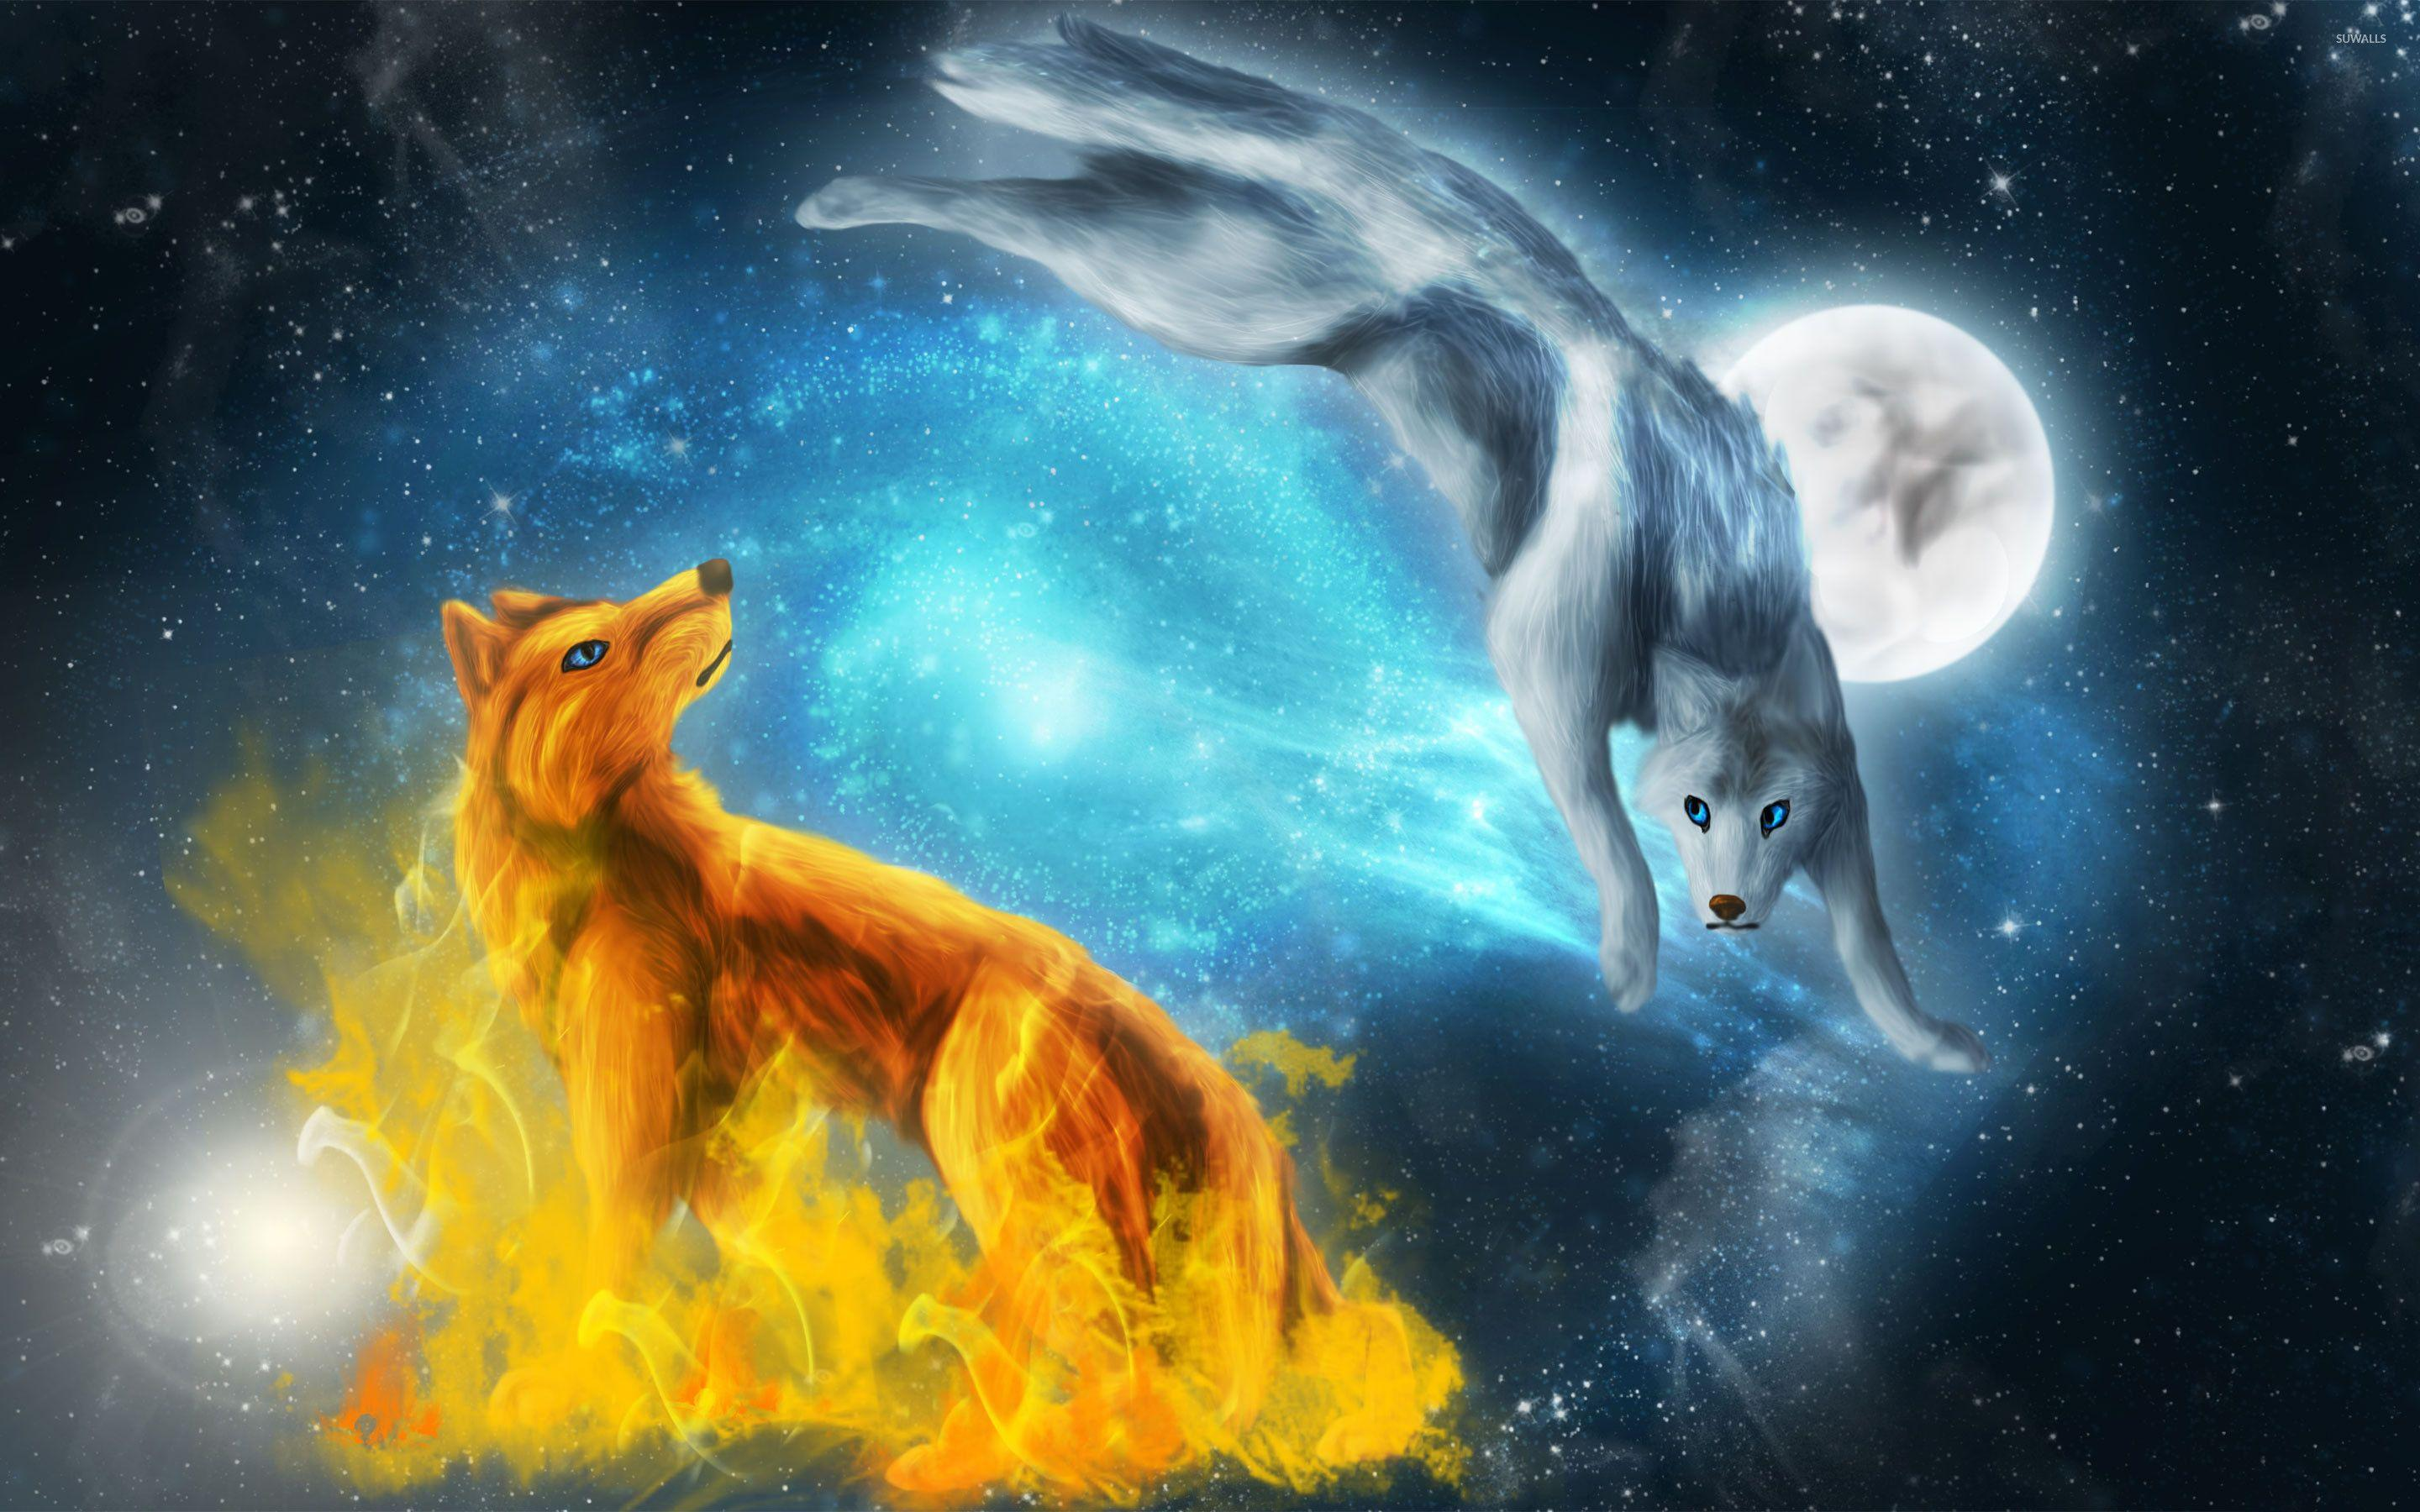 Fire Wolf Vs Ice Wolf Wallpapers Wallpaper Cave